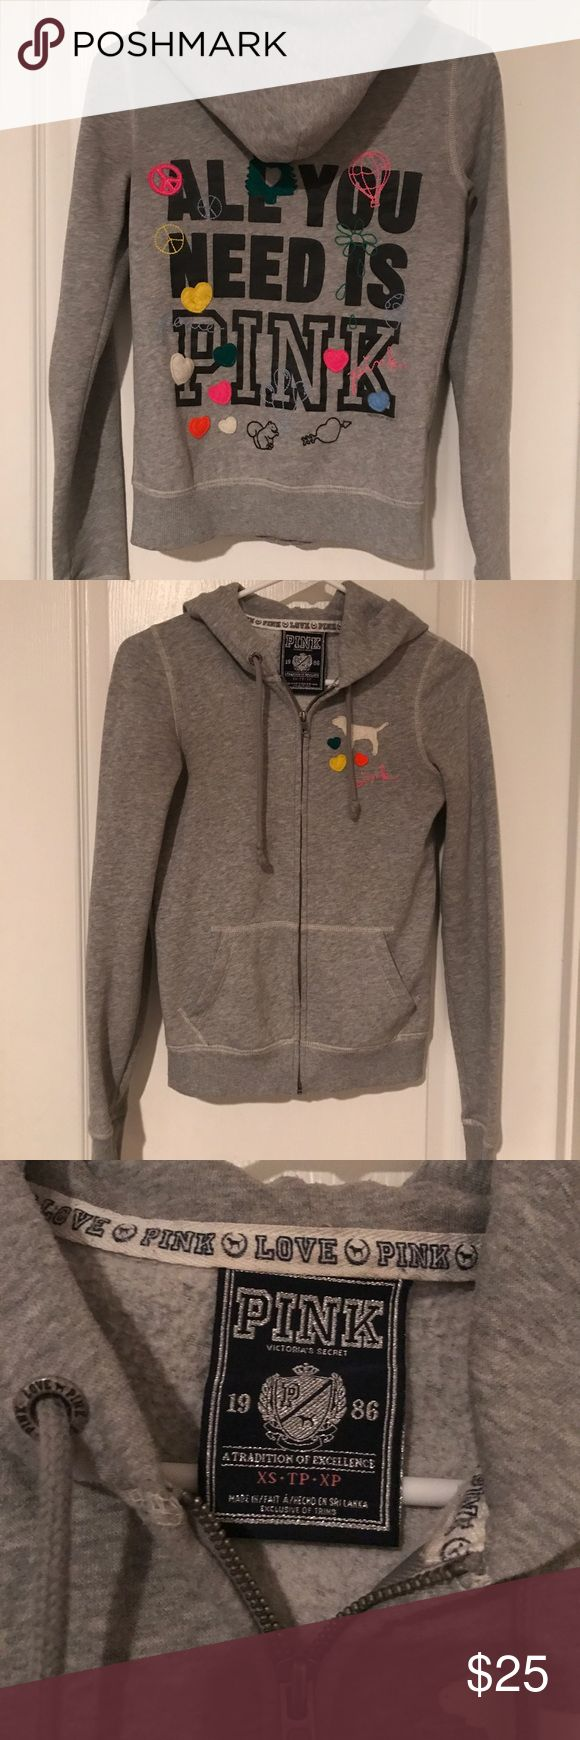 Victoria's Secret Pink Grey Zip Up Hoodie Jacket 💚💛All You Need is Love💙💜 Victoria's Secret Pink grey zip up jacket in XS. Cute simple jacket for an every day casual look. PINK Victoria's Secret Tops Sweatshirts & Hoodies